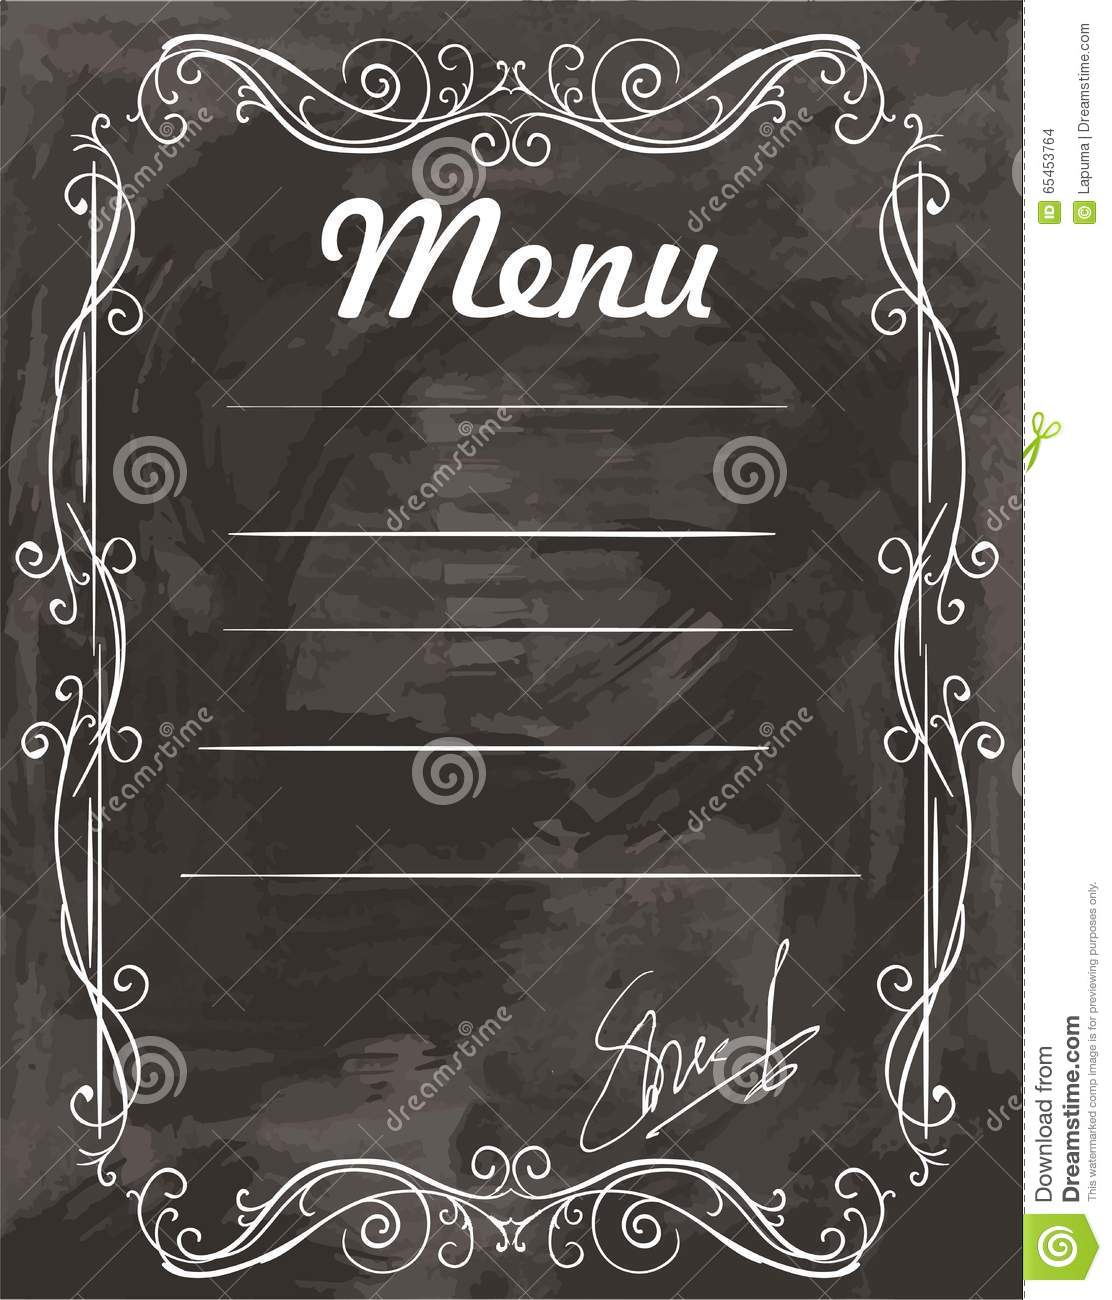 Cafe Cru Menu